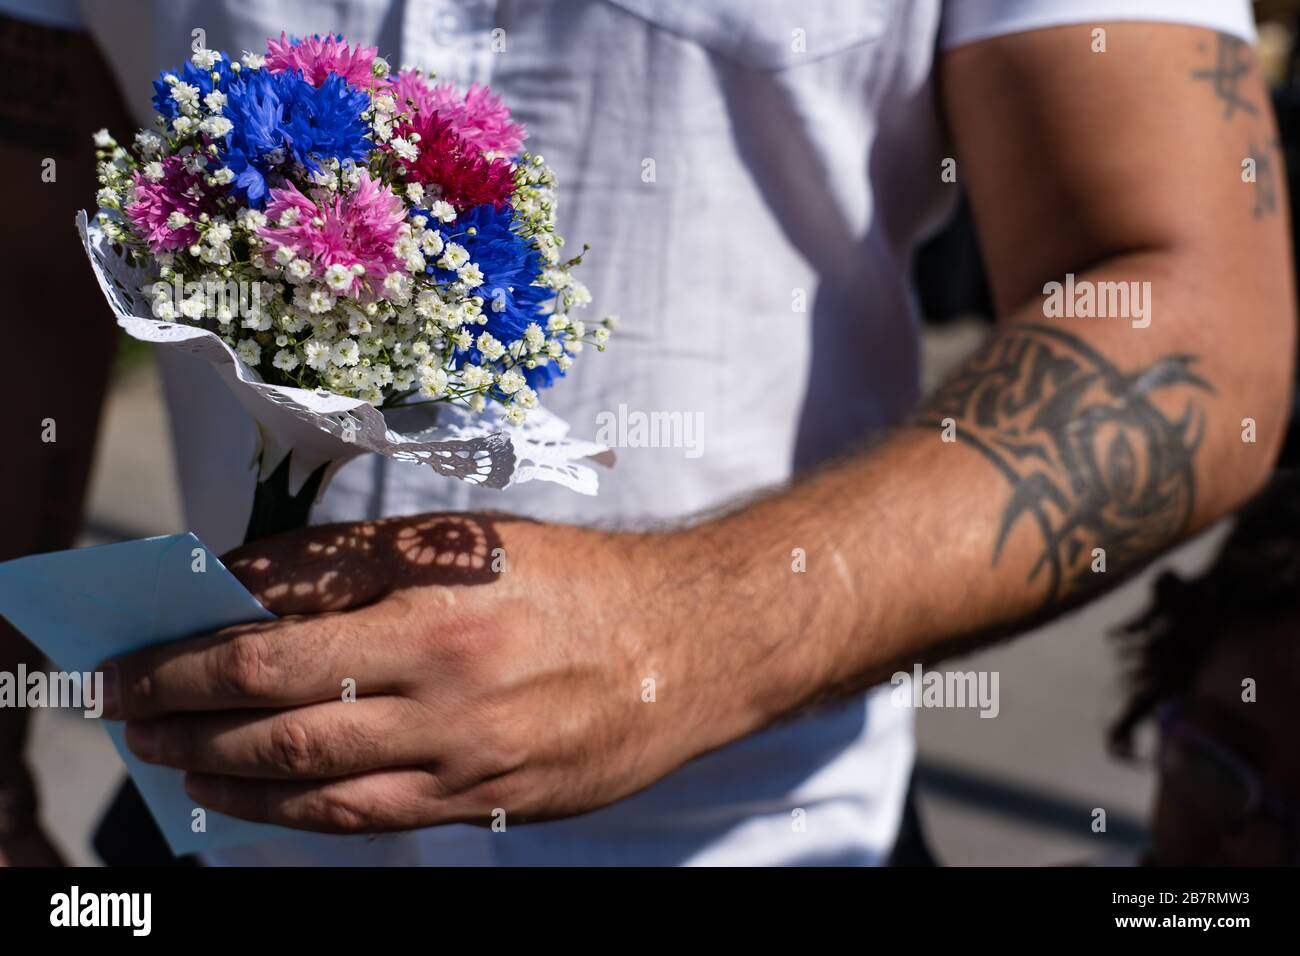 Men With Tattoo Holding Flower Bouquet Of Children In Hand On The 4th Of July At Jugendfest Brugg 2019 Stock Photo Alamy